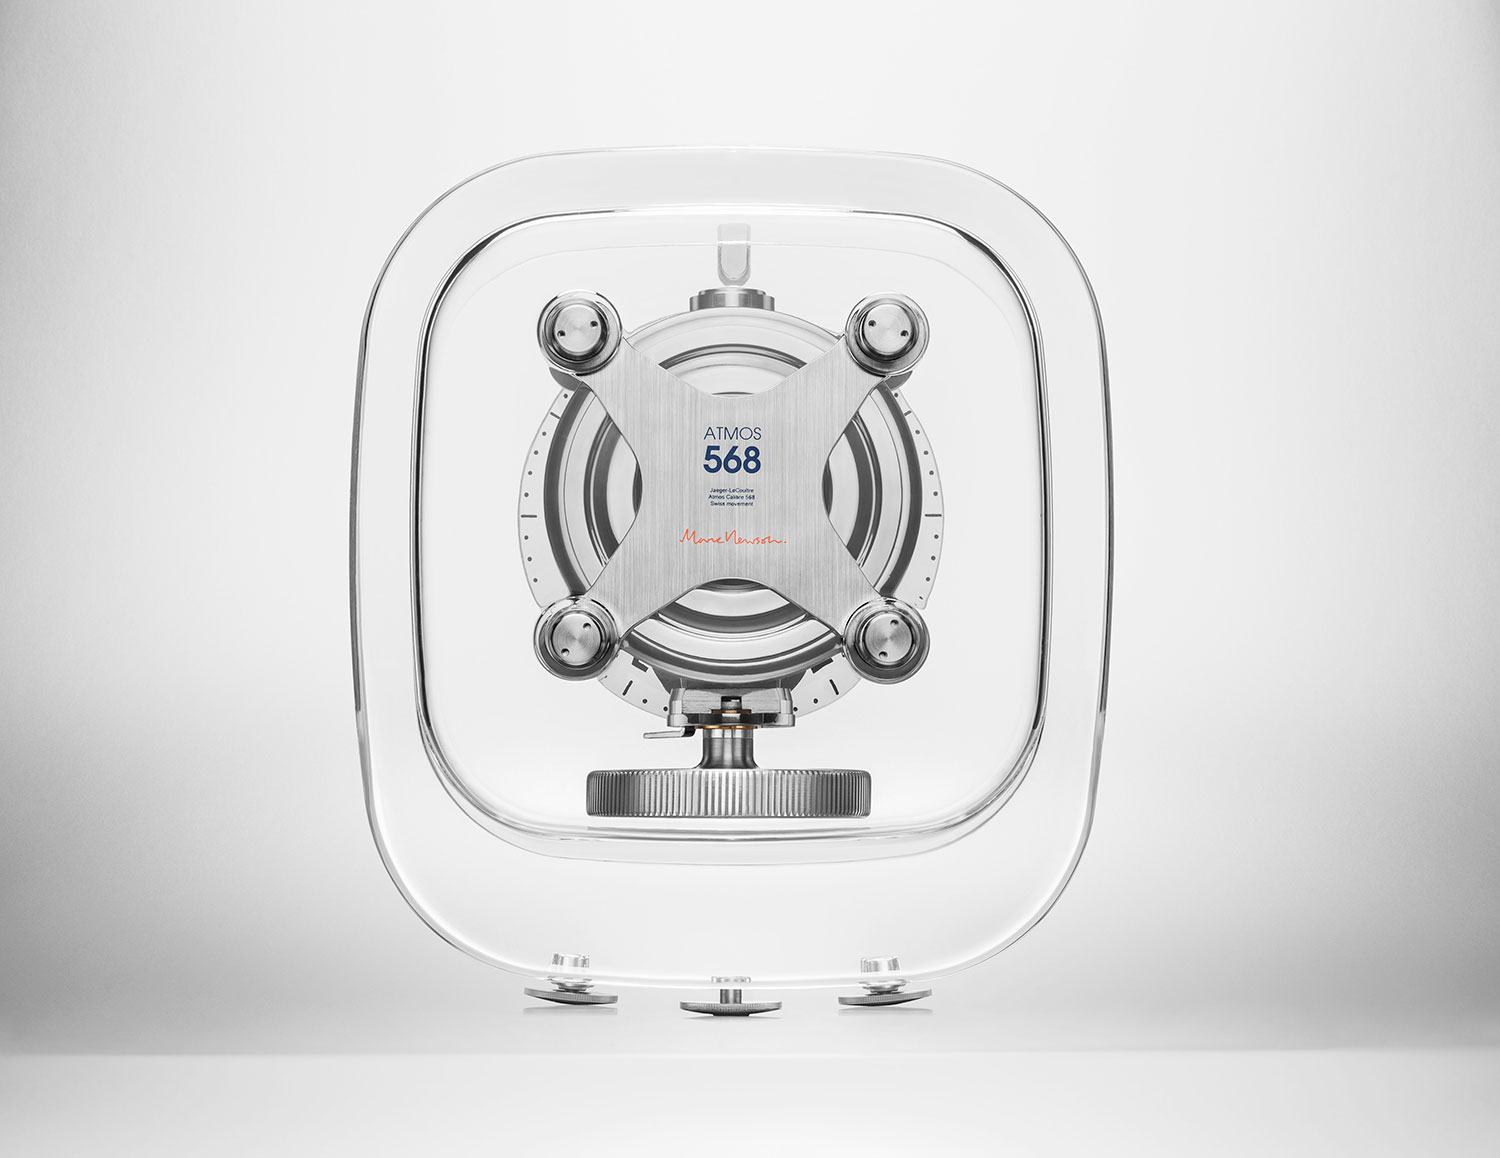 reverso del Atmos 568 by Marc Newson